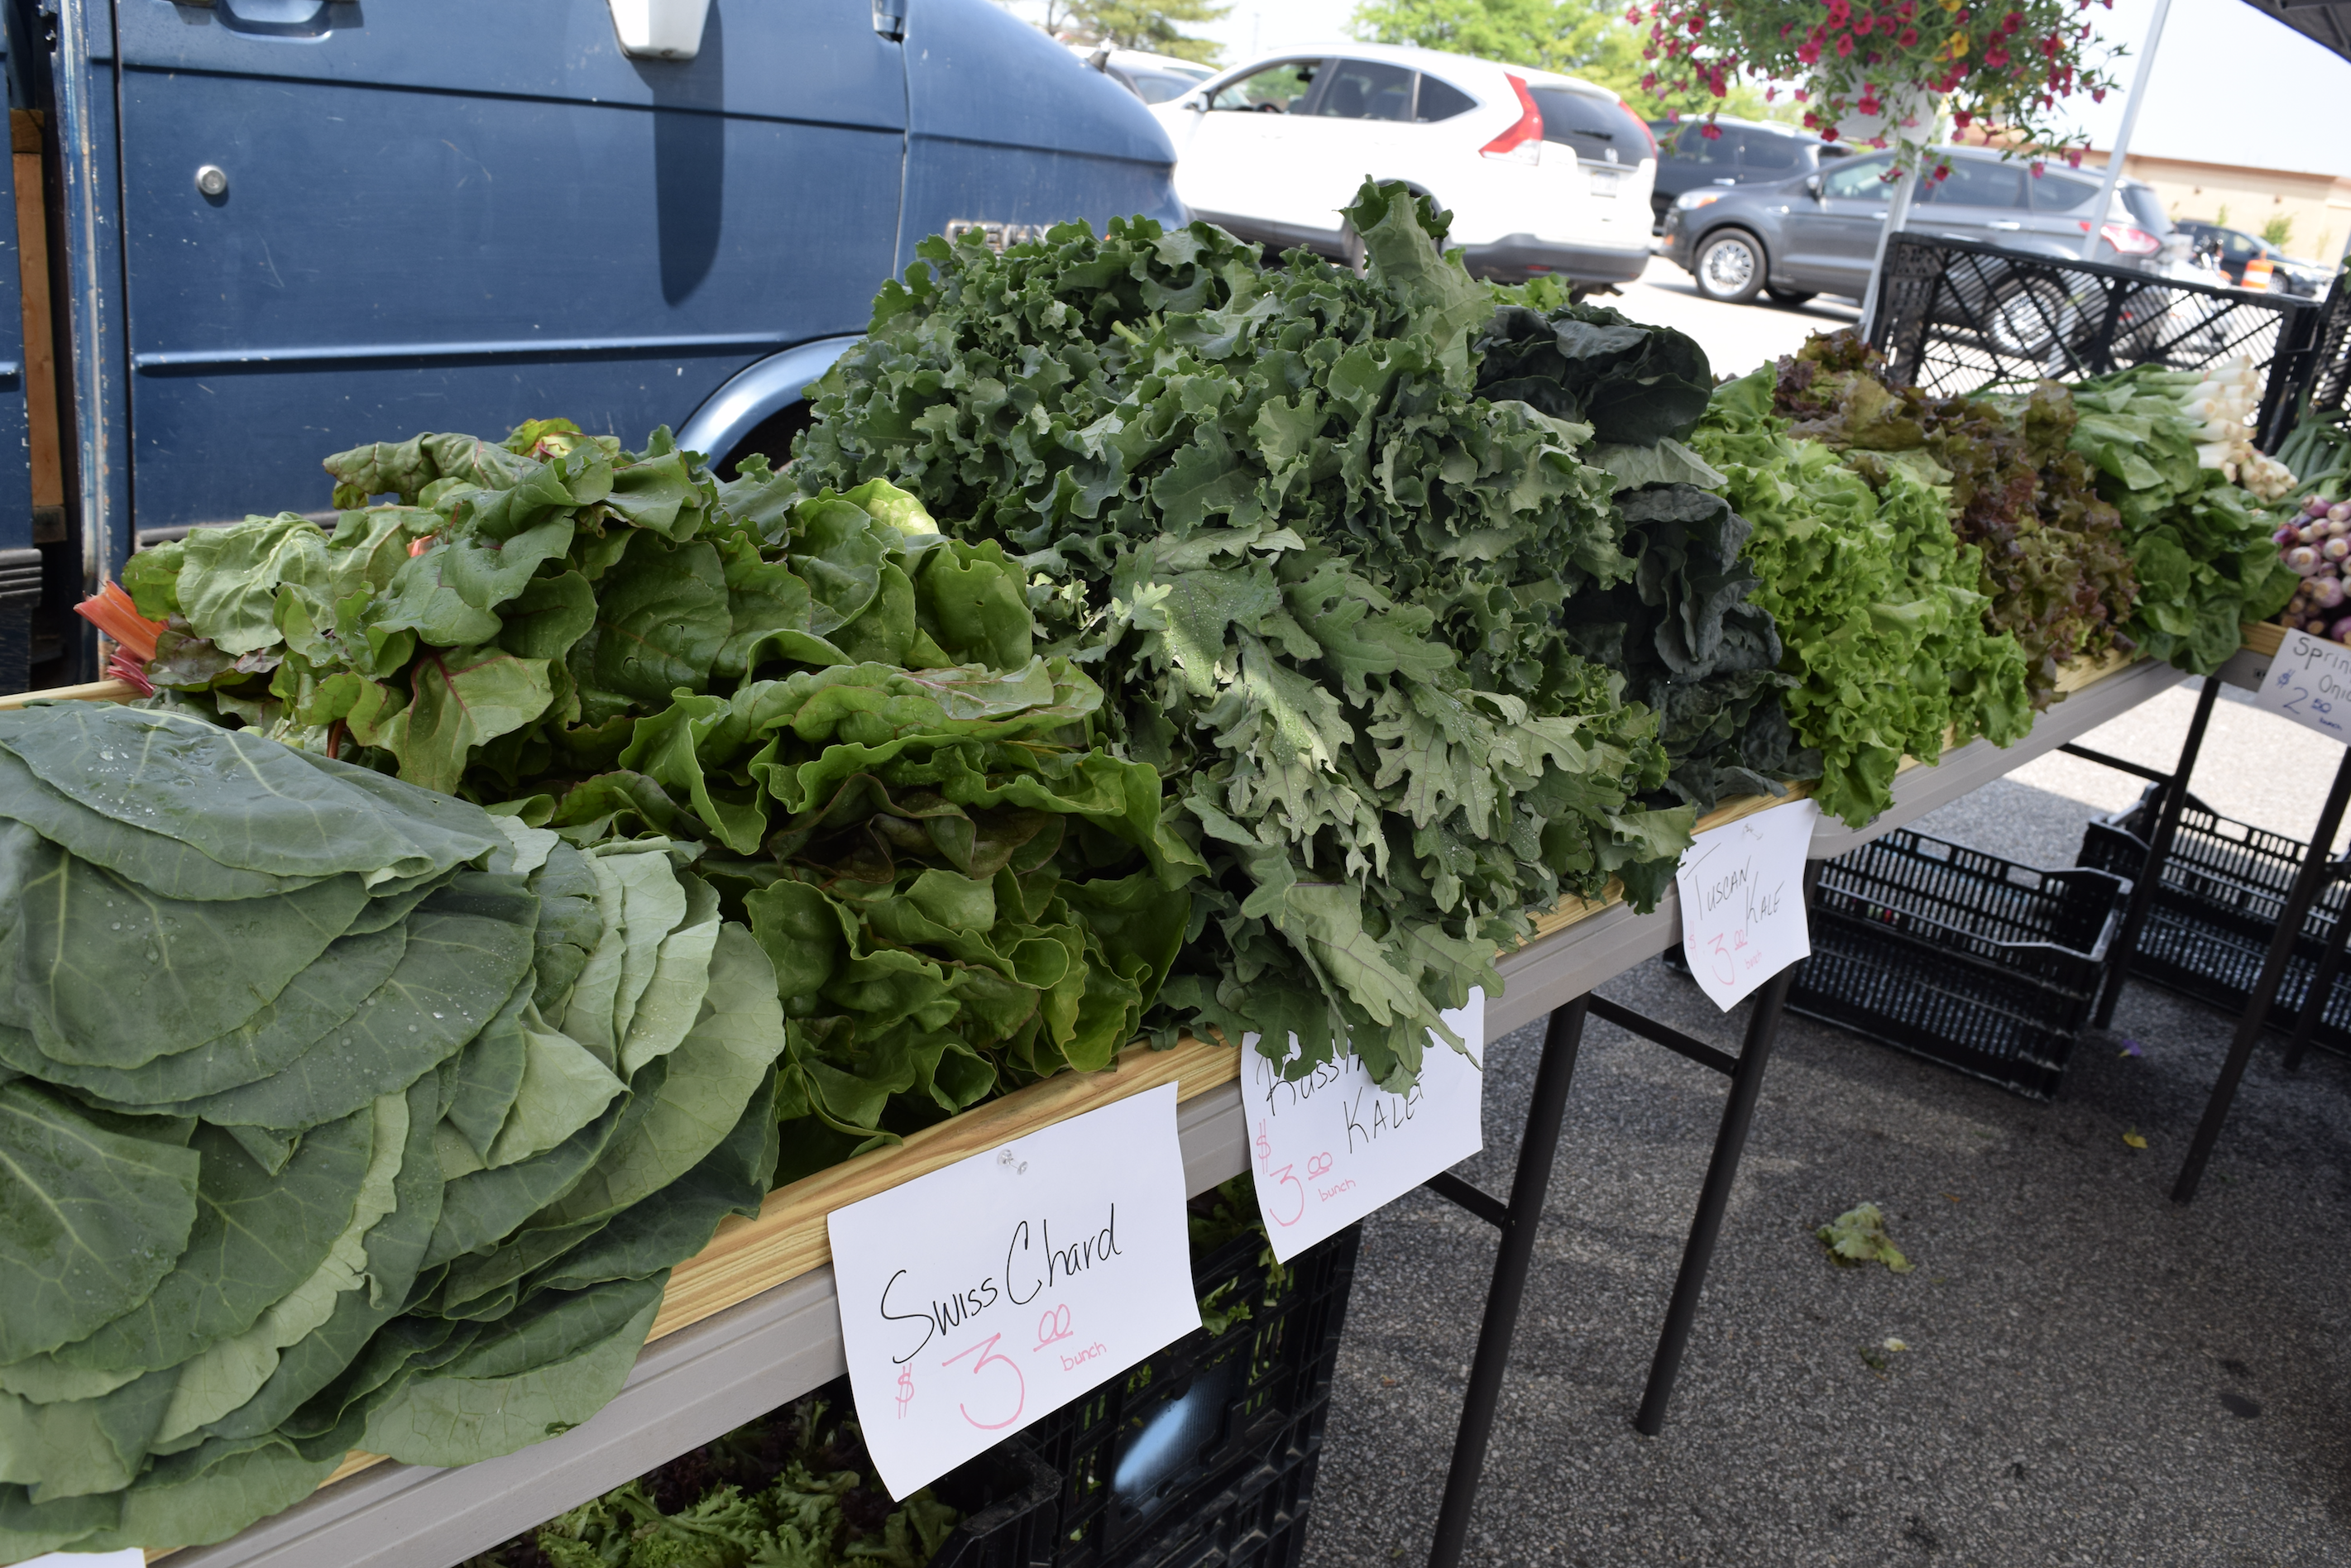 Fresh produce found at the farmers market in Woodbridge, Virginia (The Market at Potomac Mills)